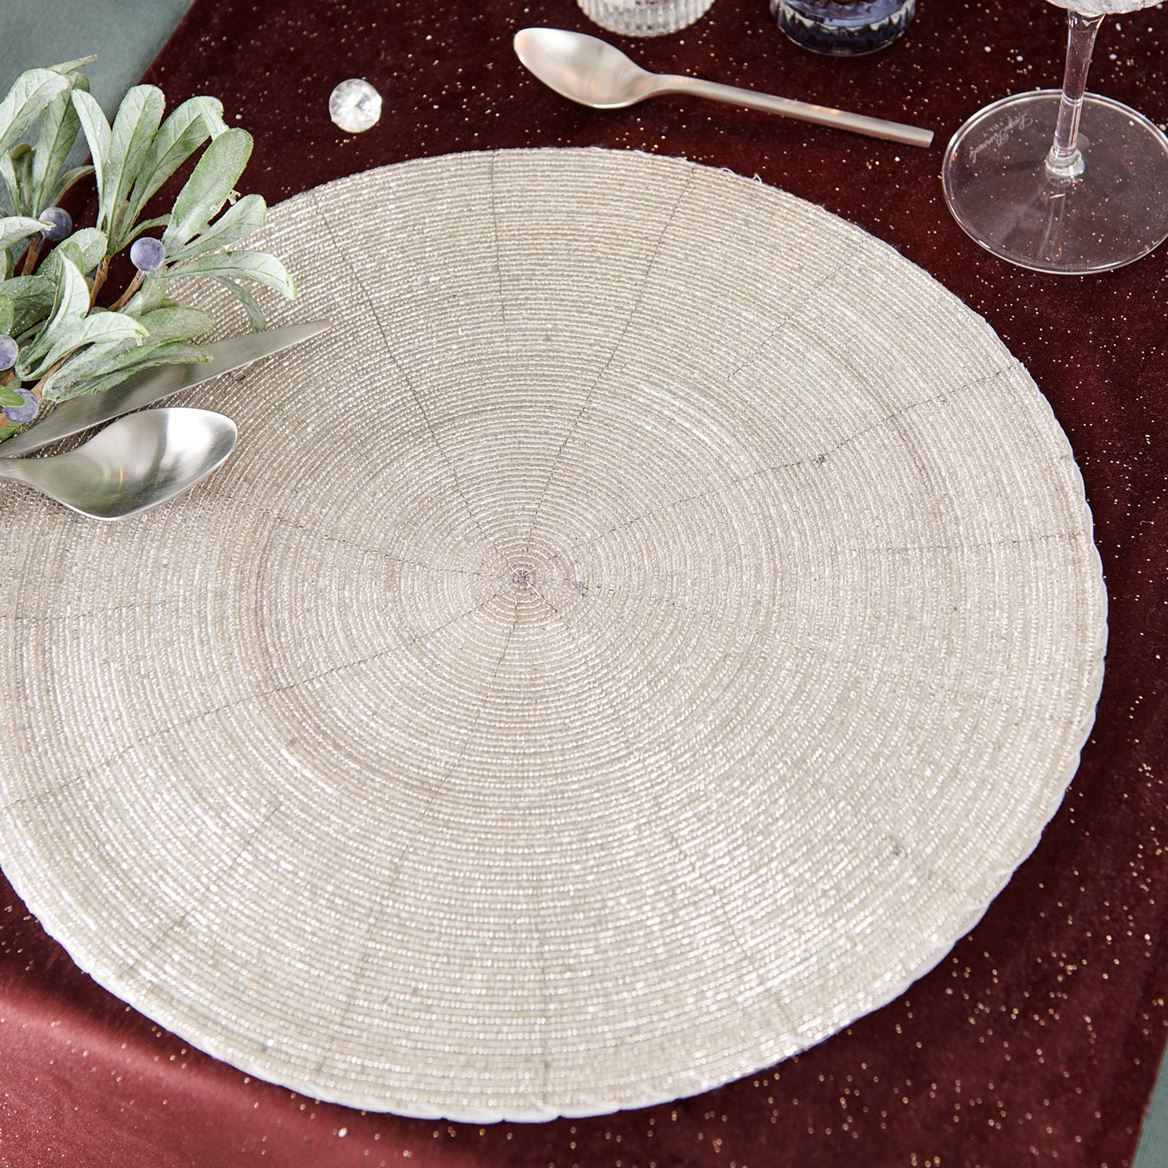 PEARLY ICE Set de table argent Ø 35 cm_pearly-ice-set-de-table-argent-ø-35-cm